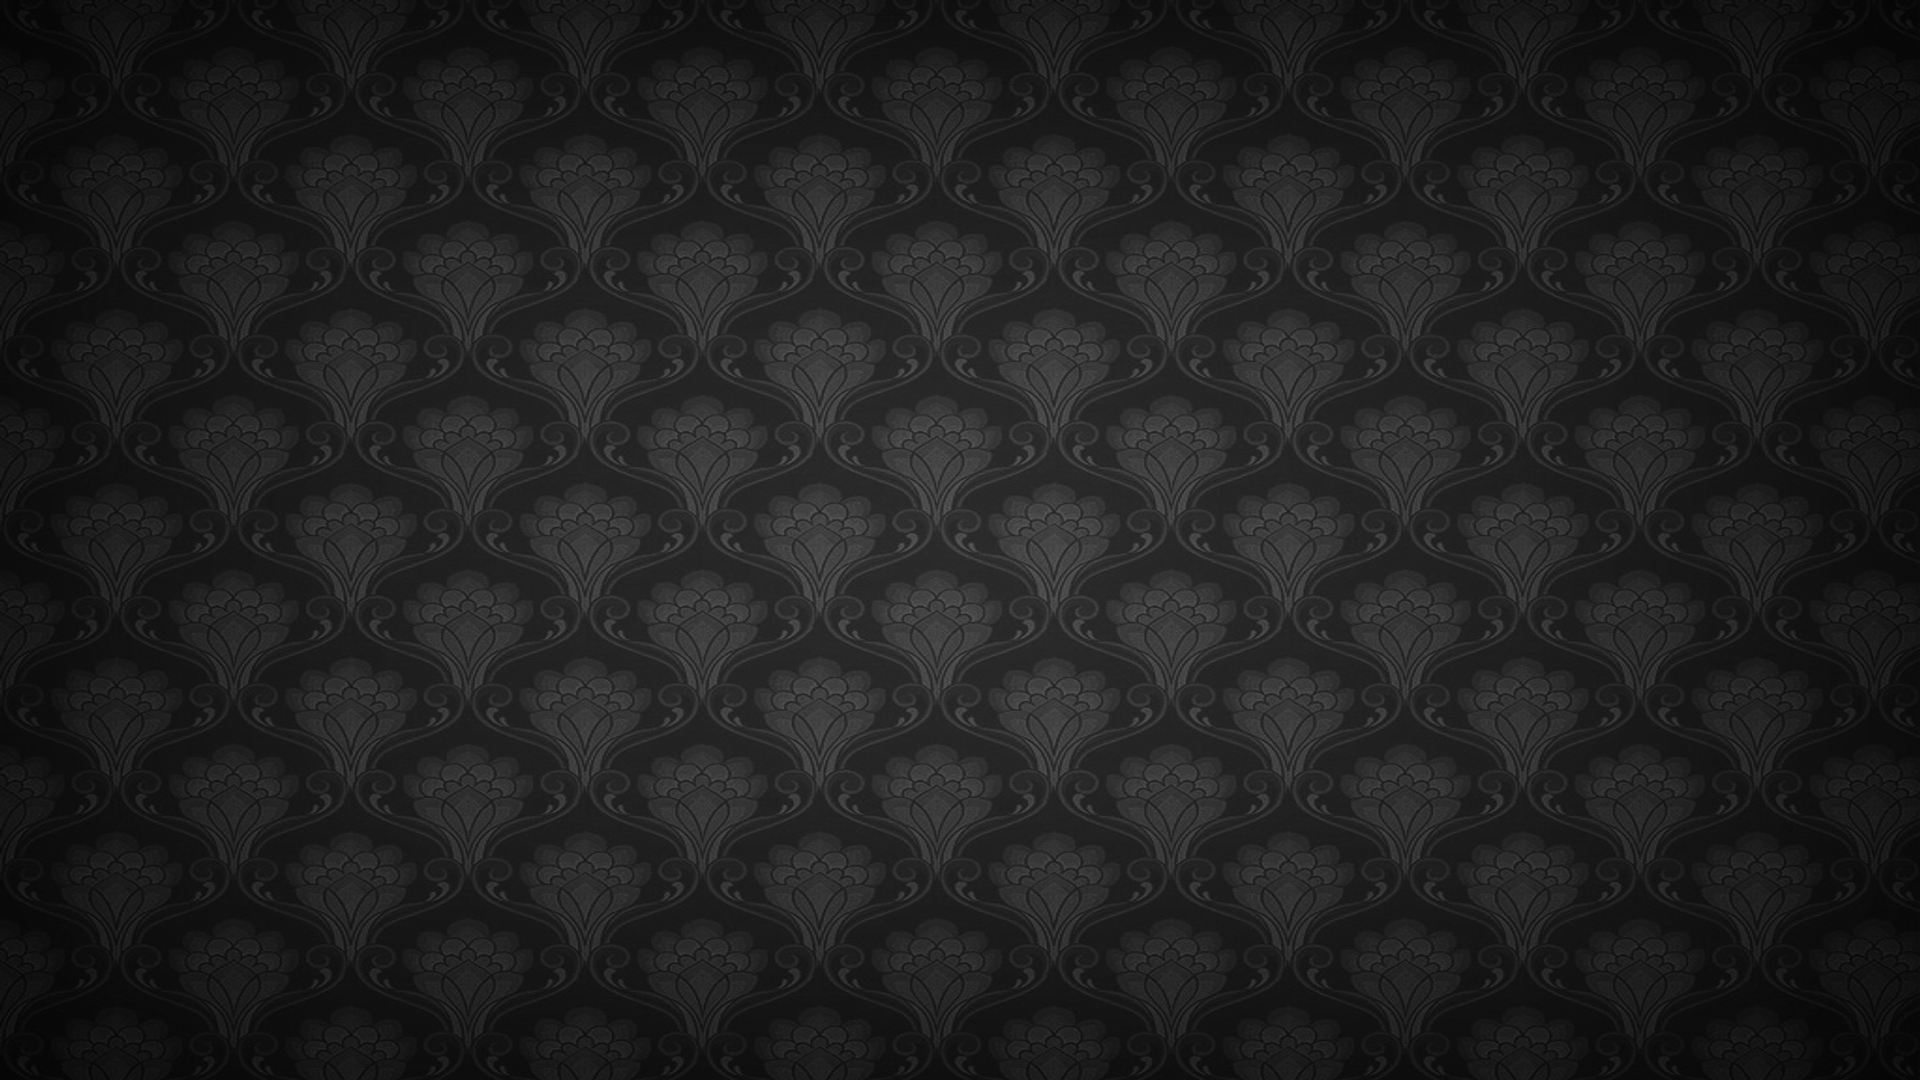 wallpaper floral black 1920x1080 1920x1080